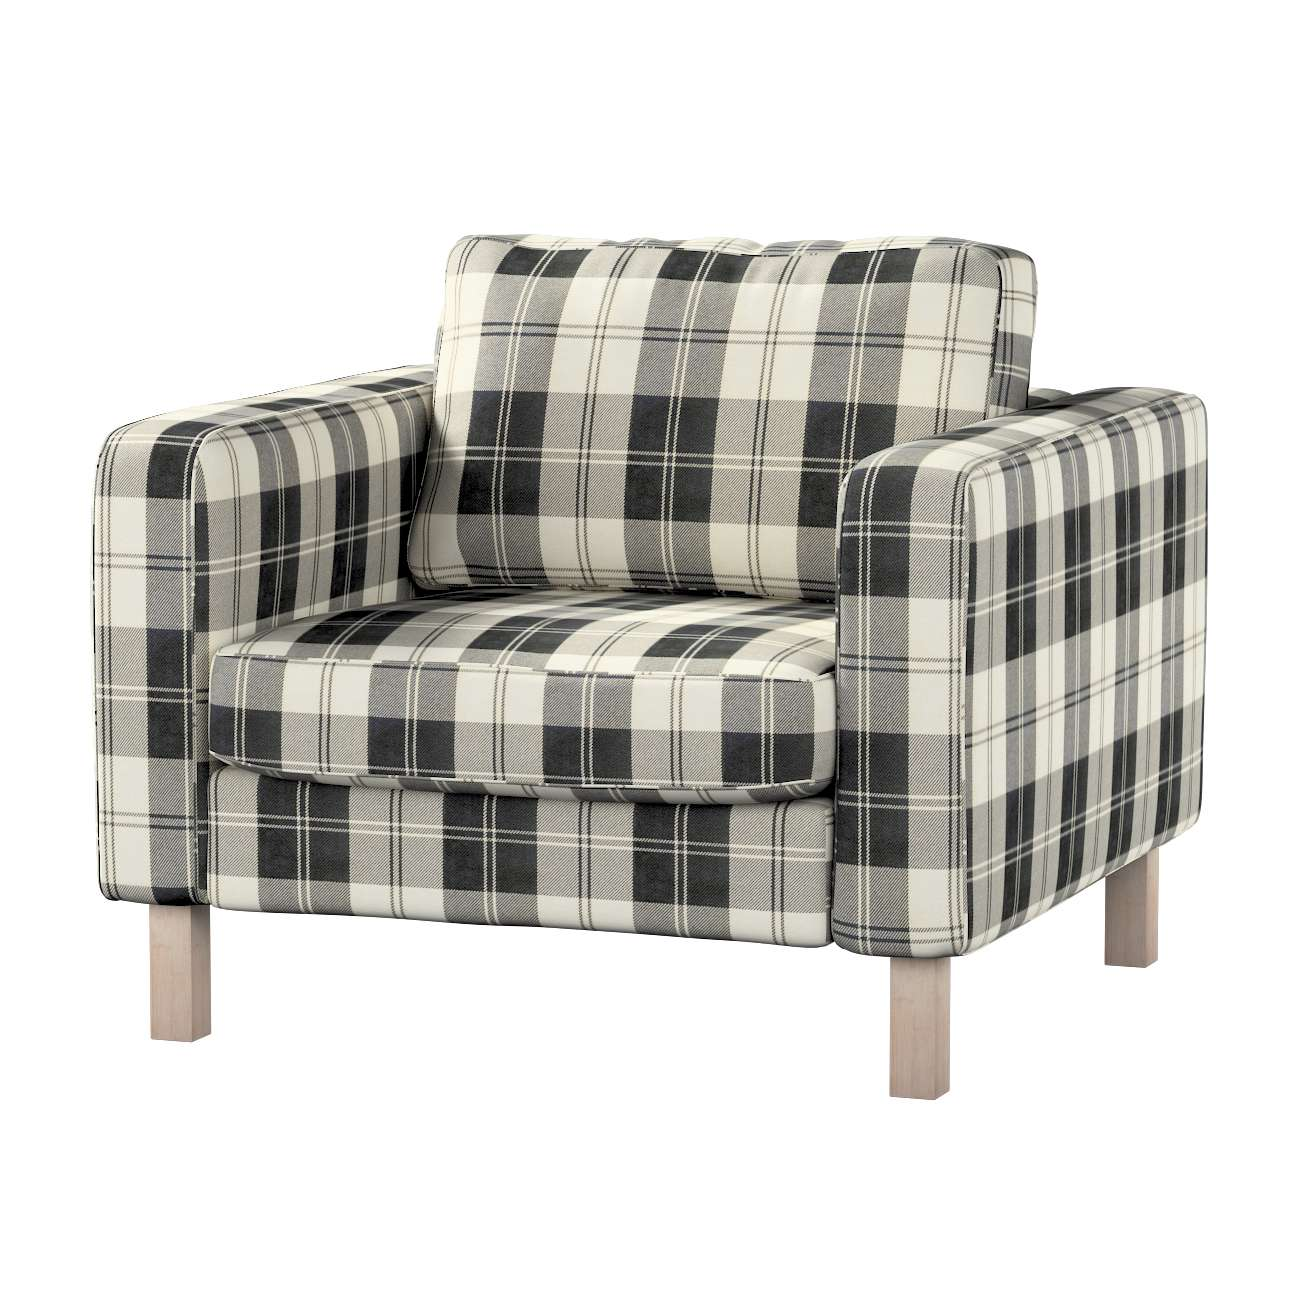 Karlstad armchair cover Karlstad armchair cover in collection Edinburgh, fabric: 115-74